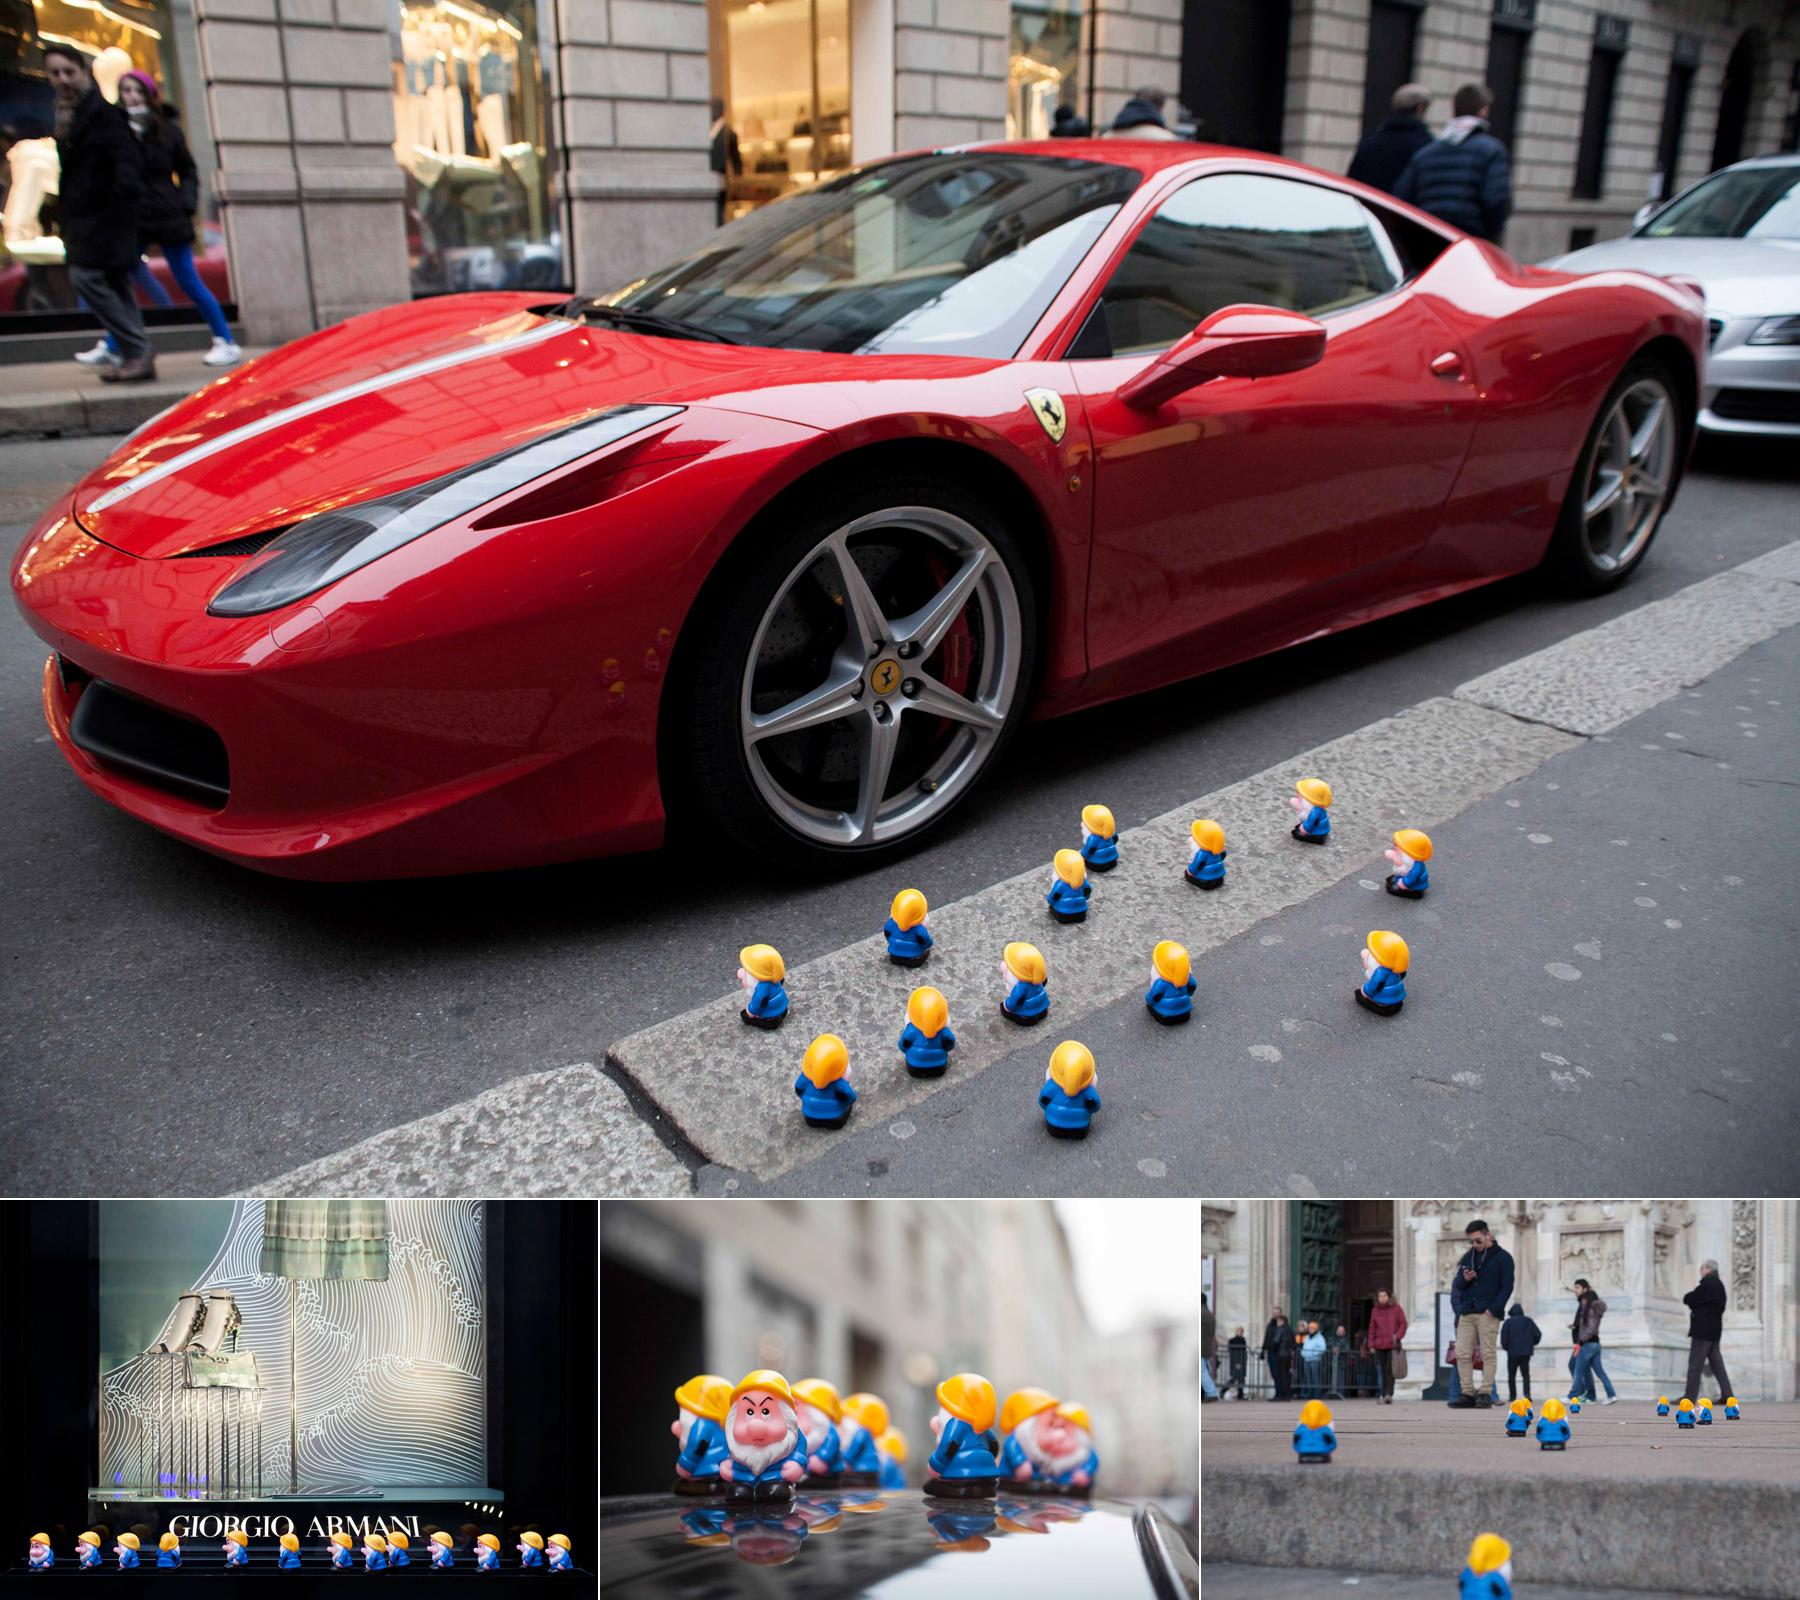 Tikyadv Ambient Ad -  Gnomes have invaded Milan